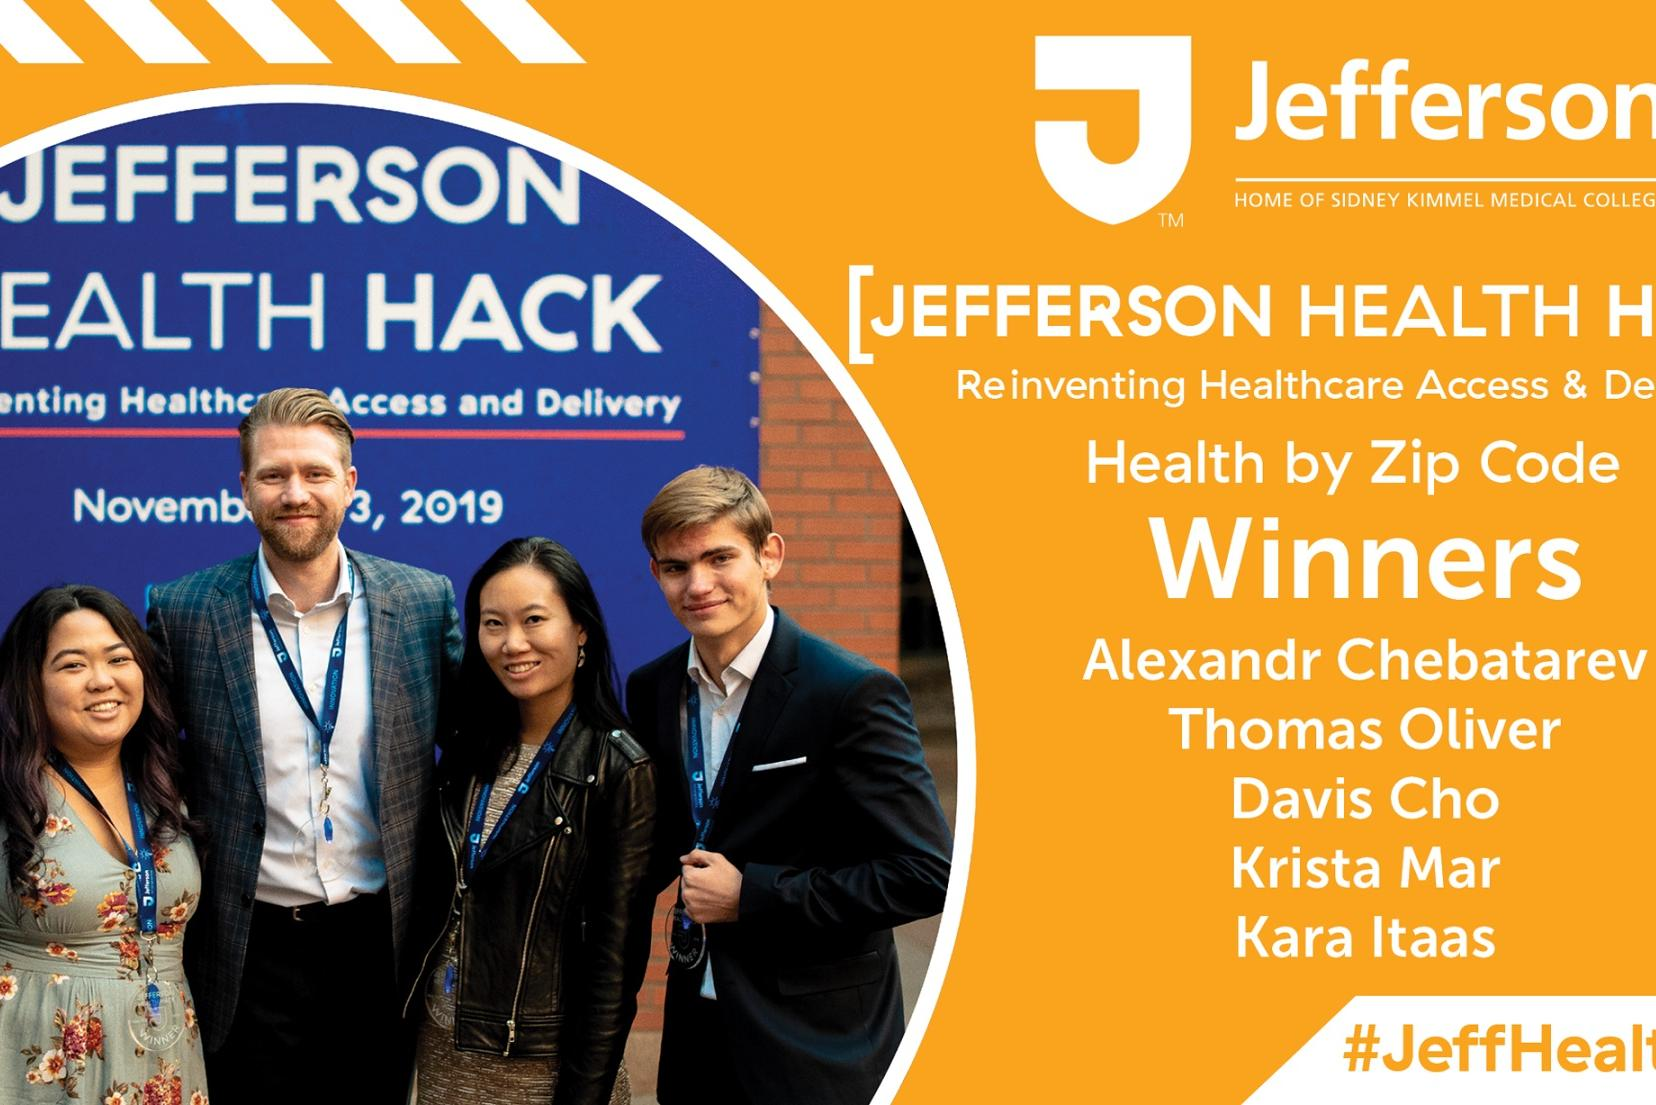 Arcadia computer science student wins a hackathon with a team